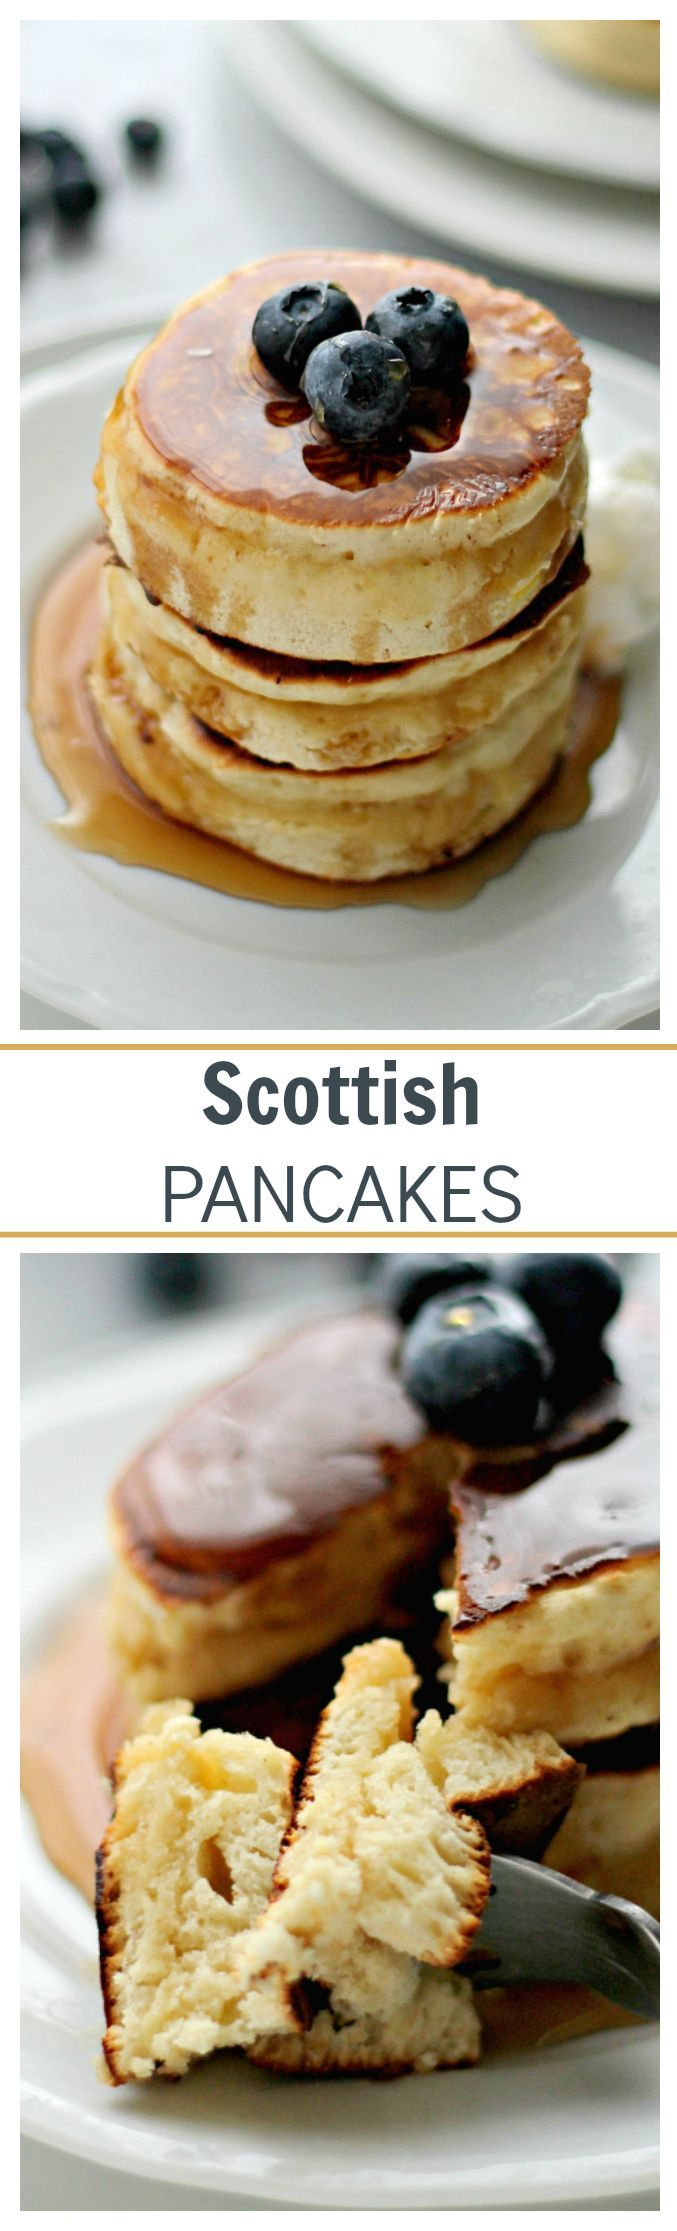 Scottish Pancakes by diethood: So fluffy! | Brunch Recipes | Pinterest | Scotch pancakes, Pancakes and Fluffy pancakes